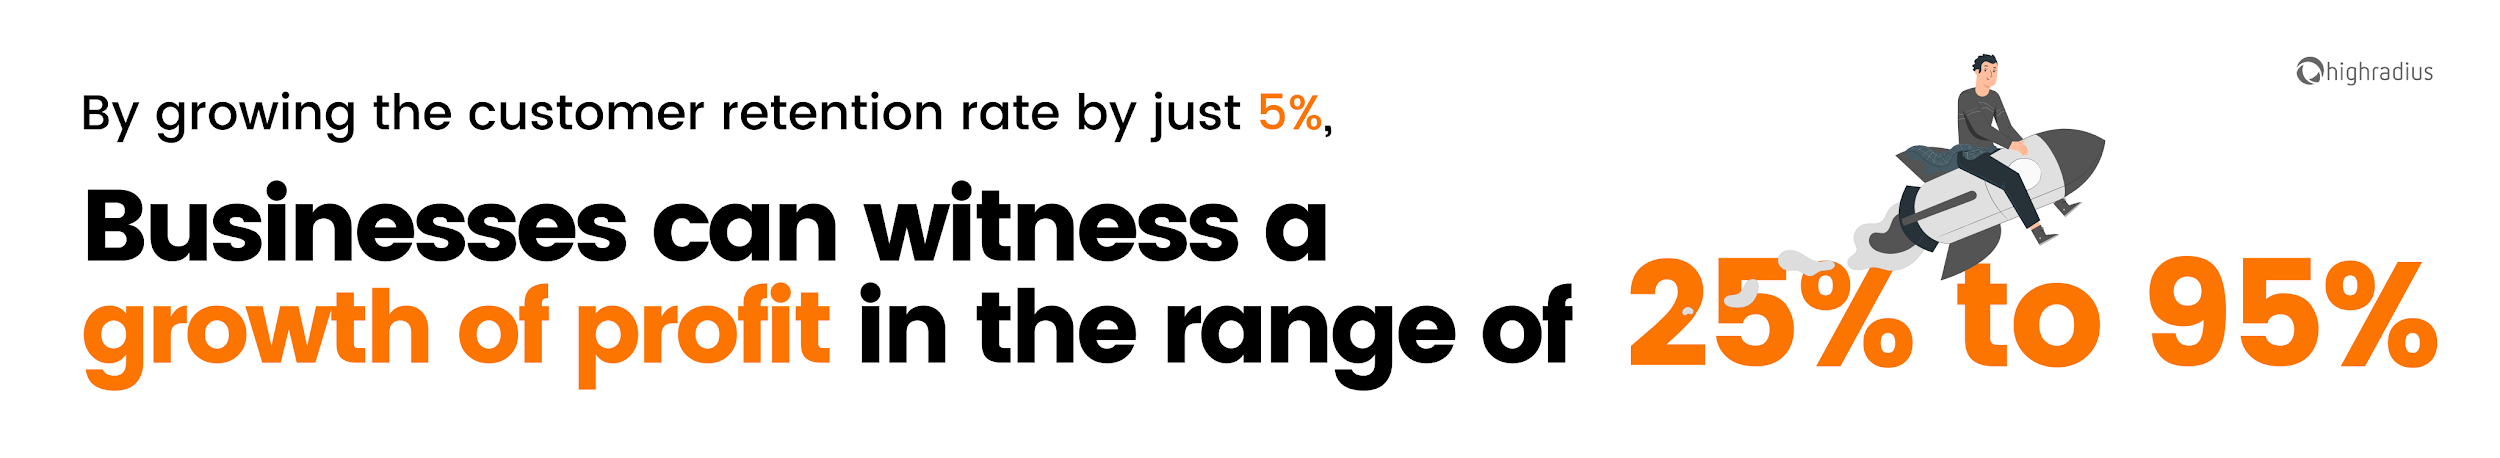 Business can witness the growth from 25% to 90% graphic